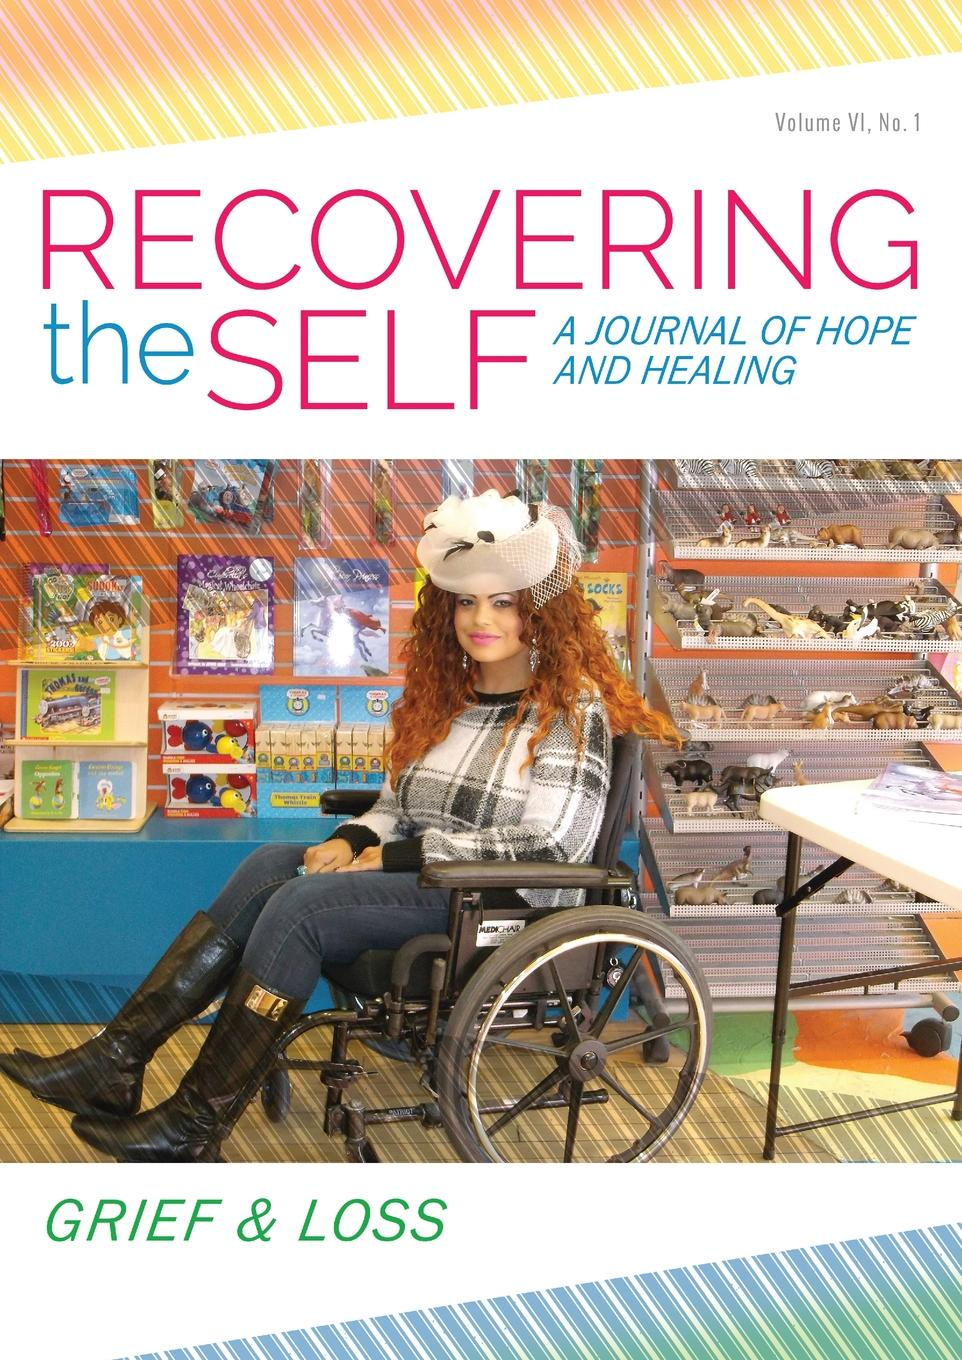 Bernie Siegel, Diane Wing Recovering the Self. A Journal of Hope and Healing (Vol. VI, No. 1) -- Grief & Loss recovering the self